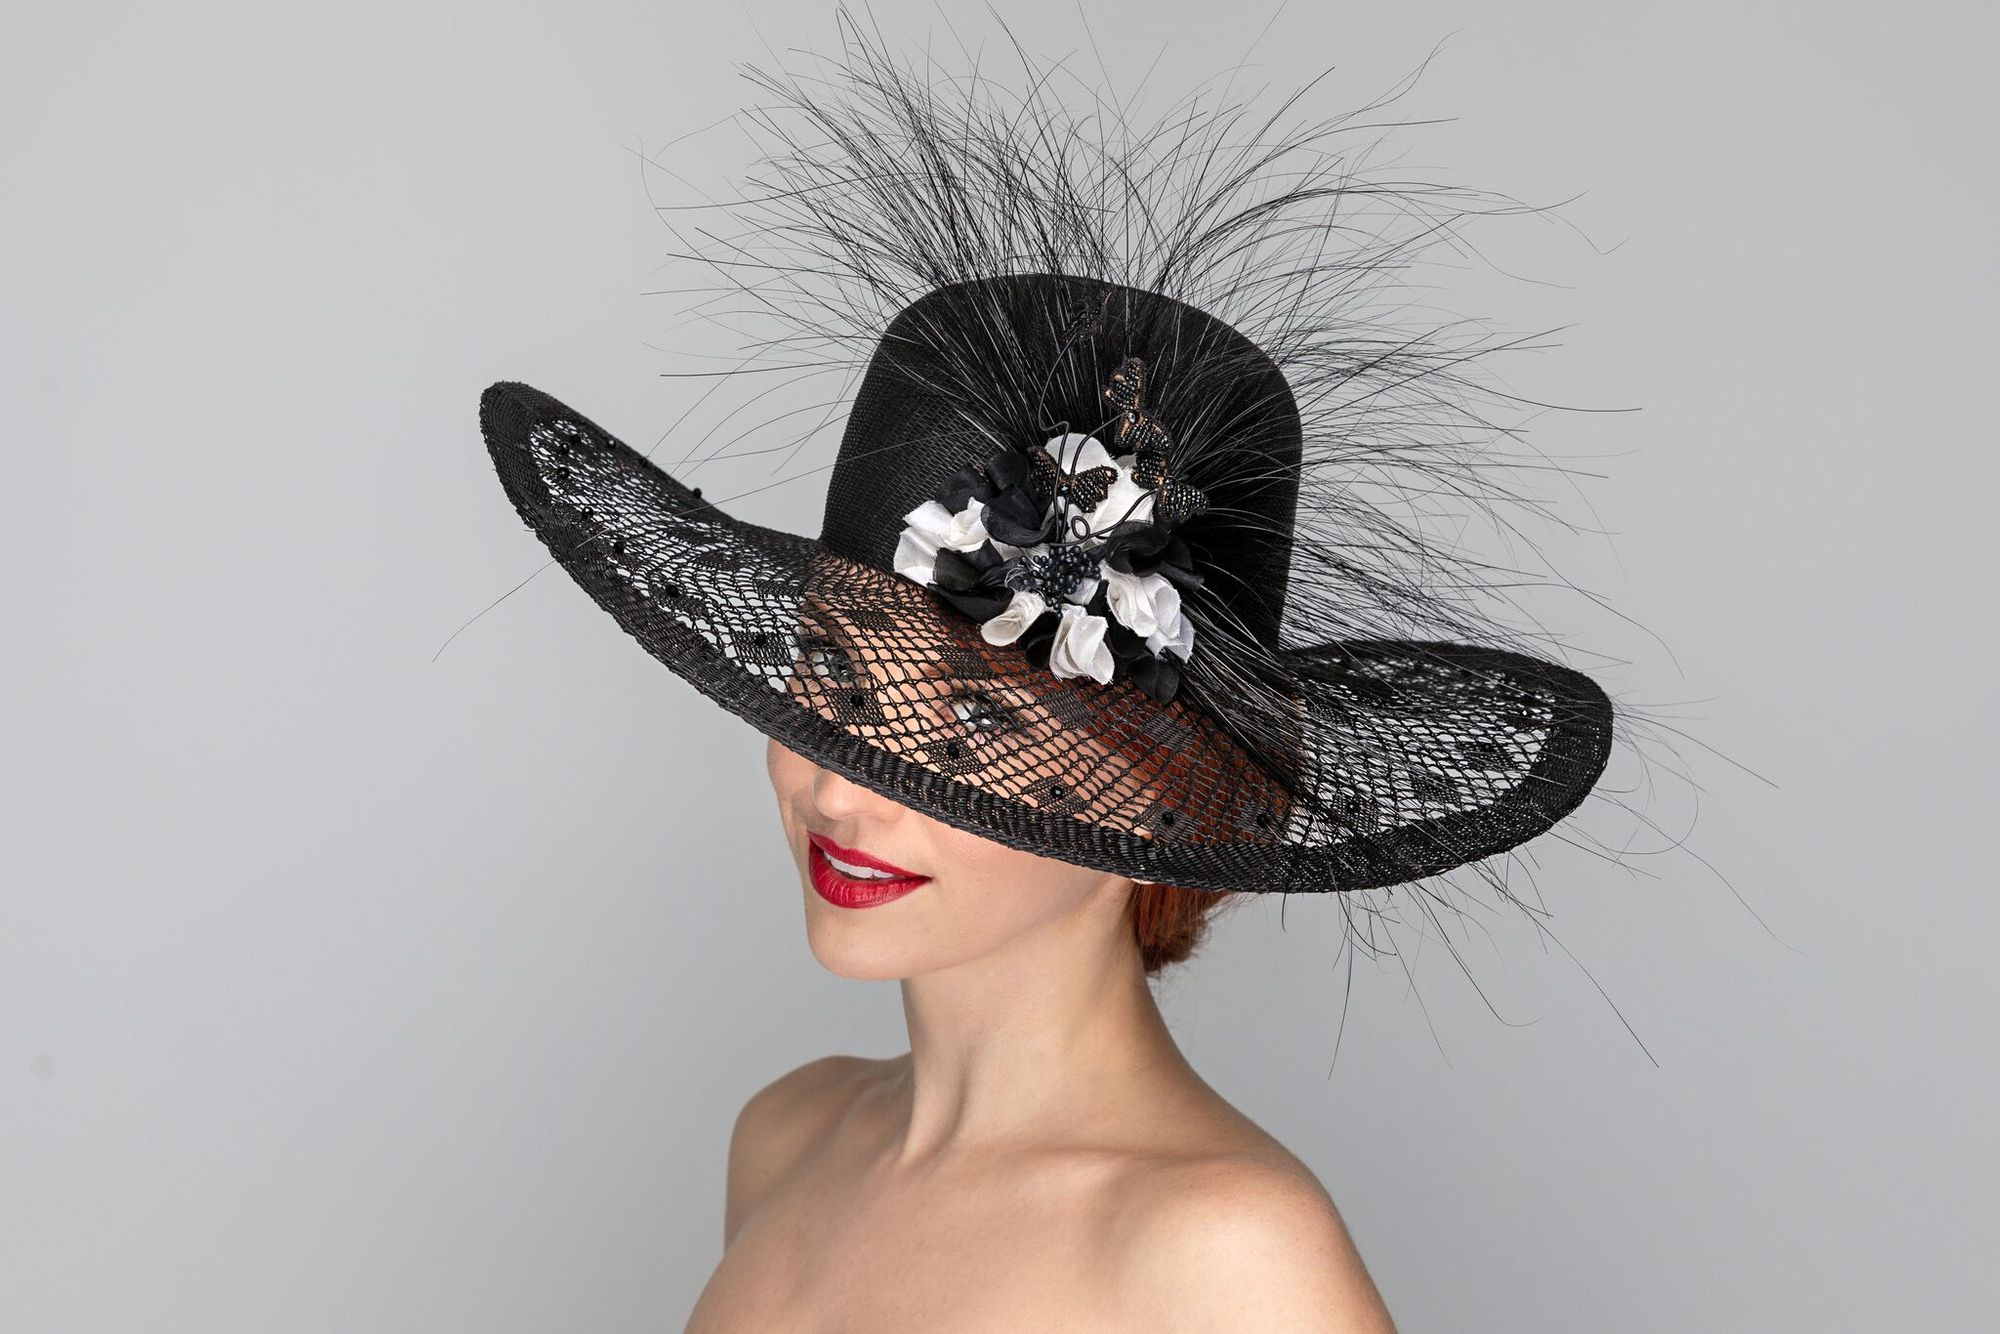 One Of A Kind Hats By Formemillinery Featuredmillinerofthe146kentuckyderby Kentuckyderby Com Kentuckyderbyfashioninsider Millinery Hats Hats Black Beauties